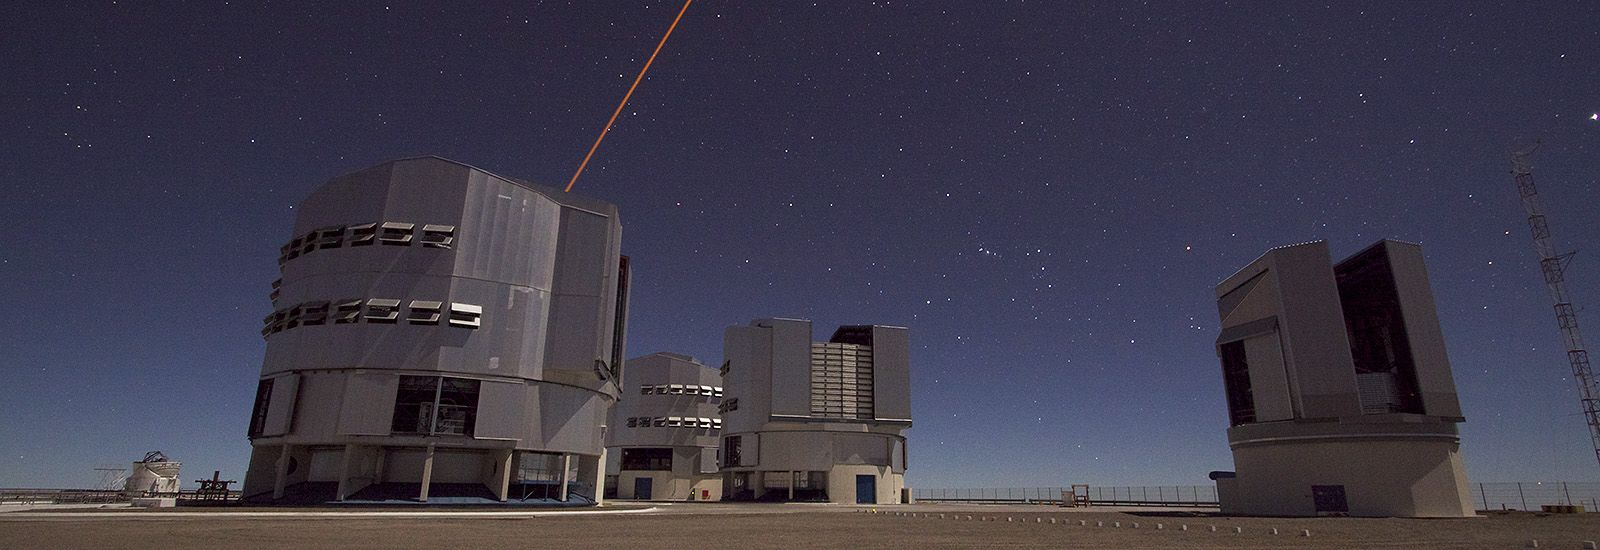 The Very Large Telescope in Chile at night